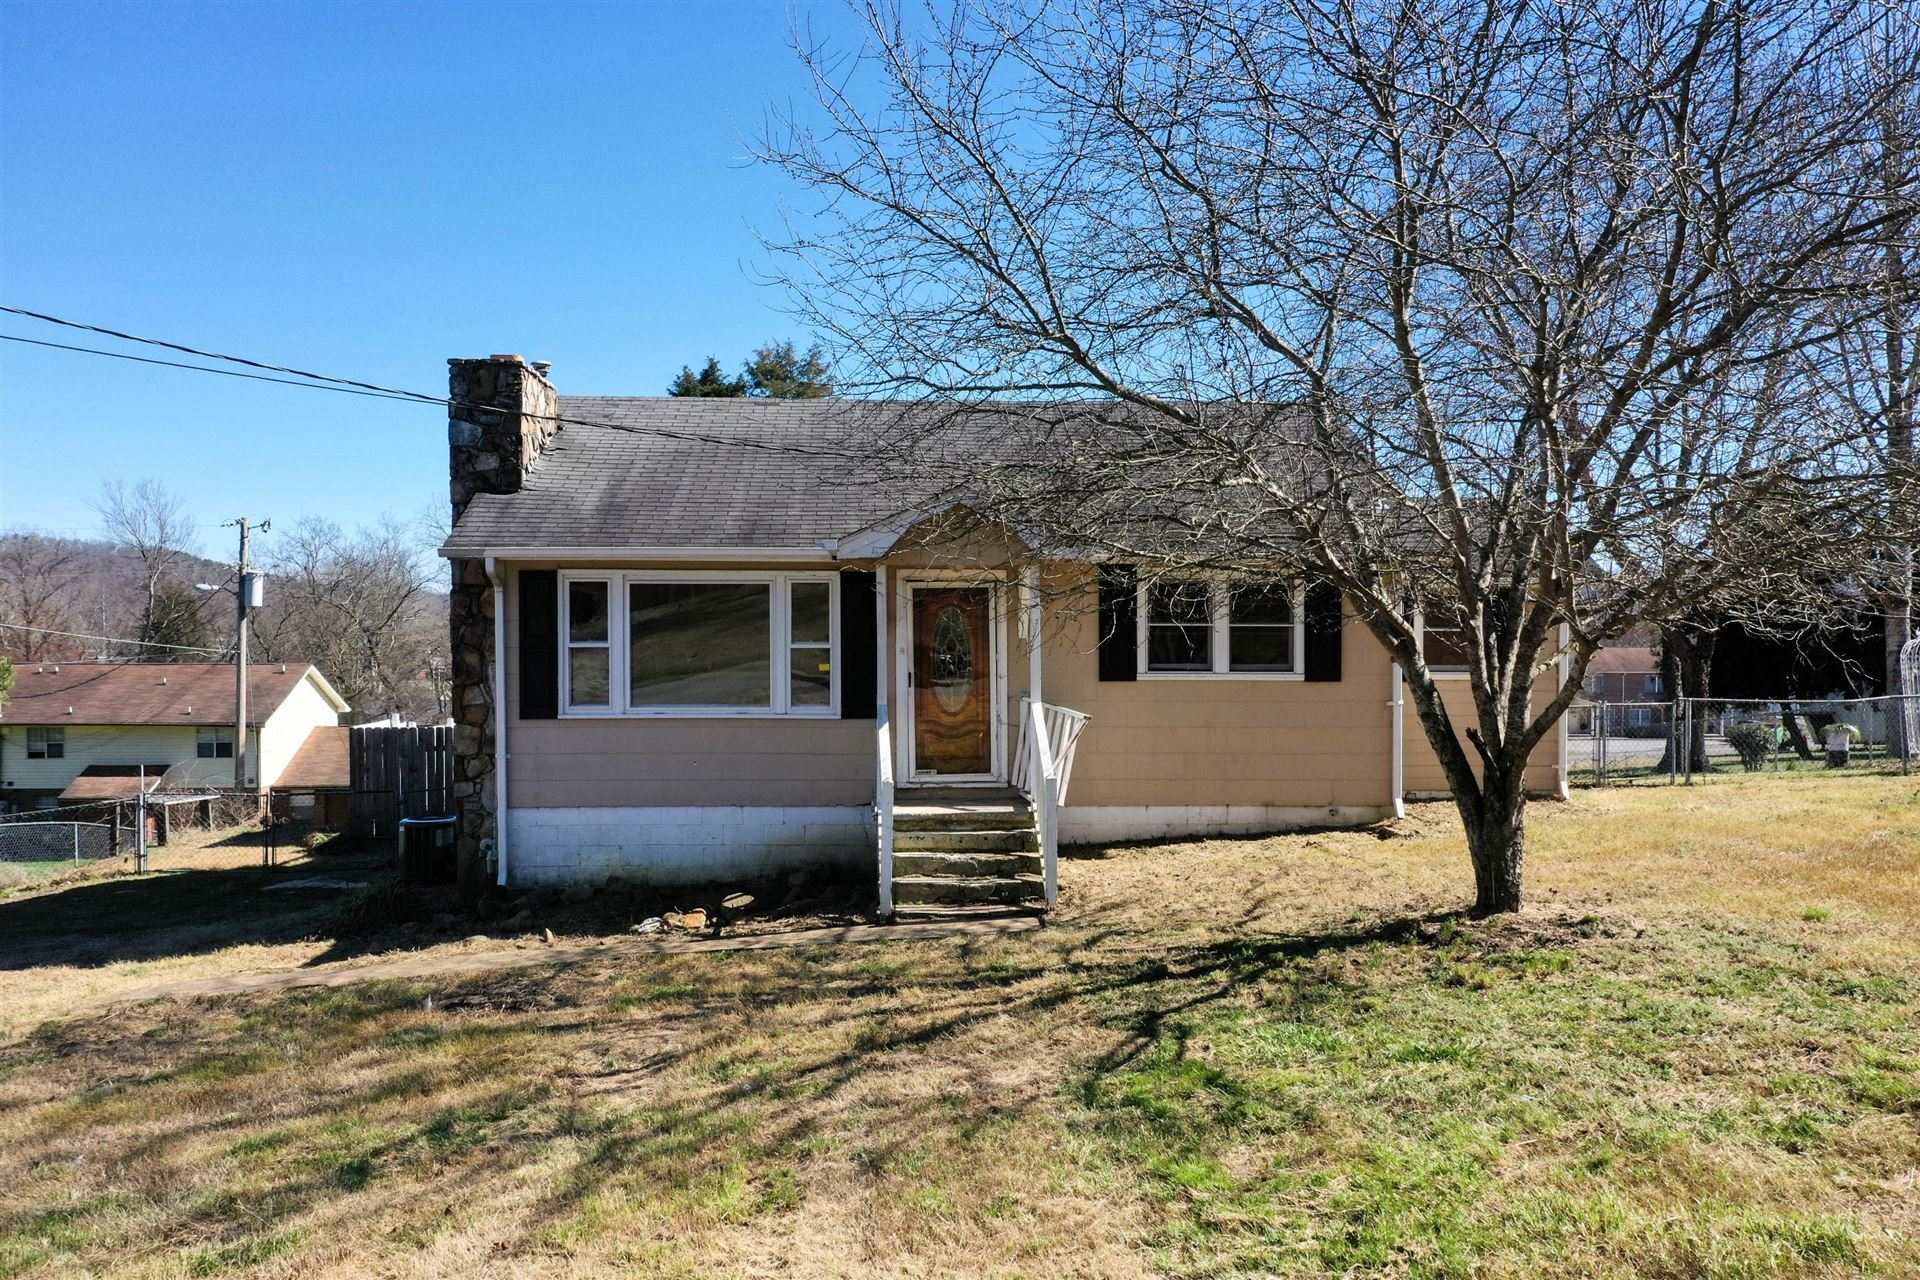 Photo of 1009 McAdoo St, Clinton, TN 37716 (MLS # 1144795)